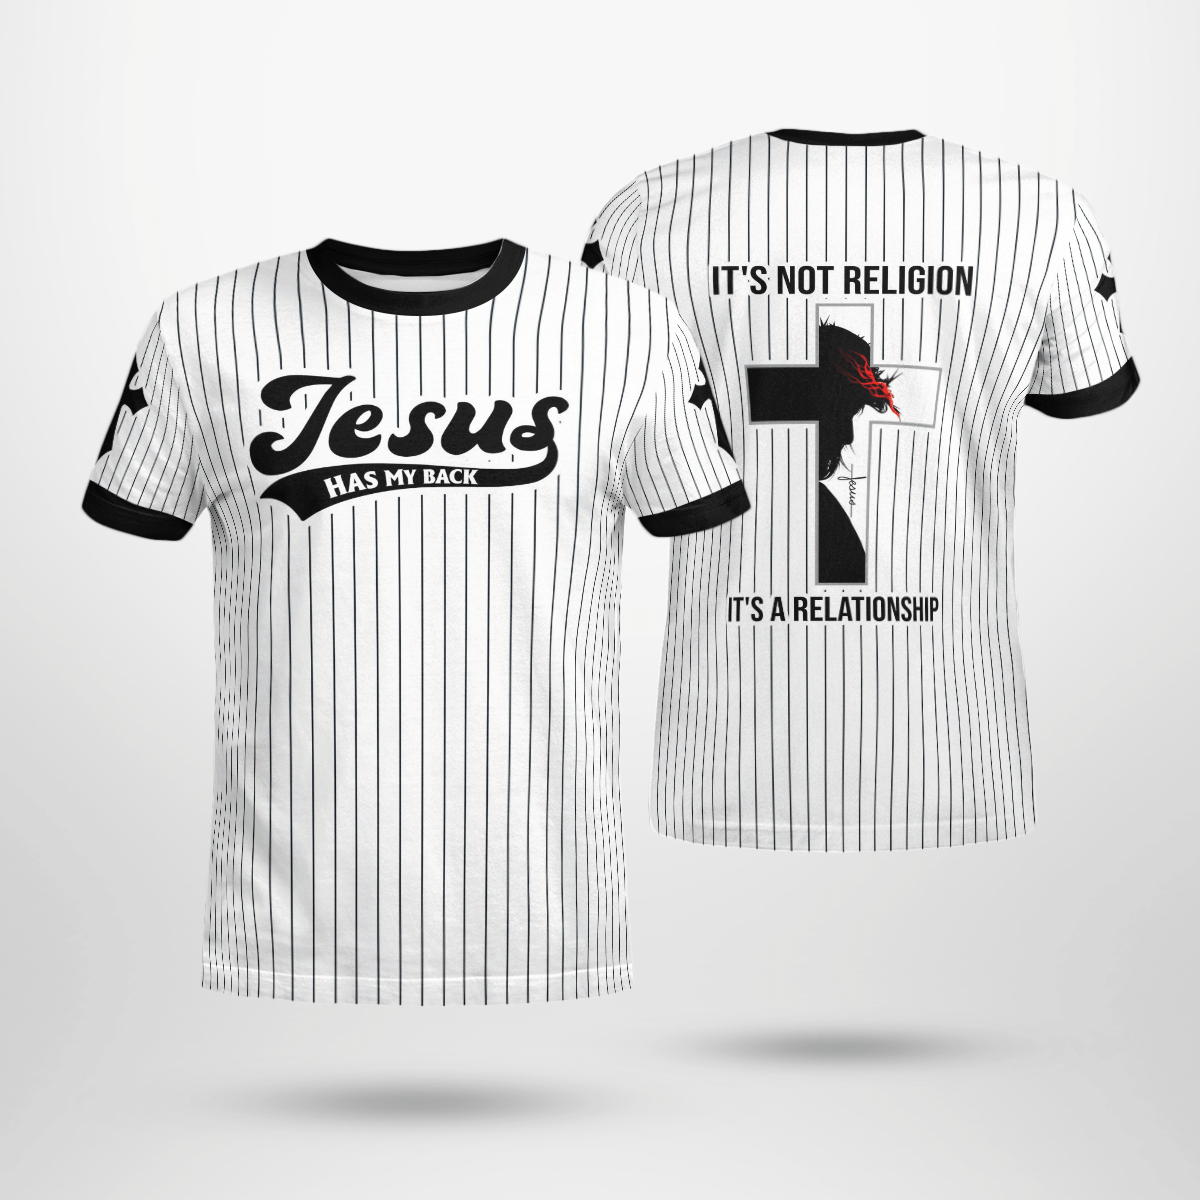 Jesus has my back its not a religion its a relationship baseball jersey shirt